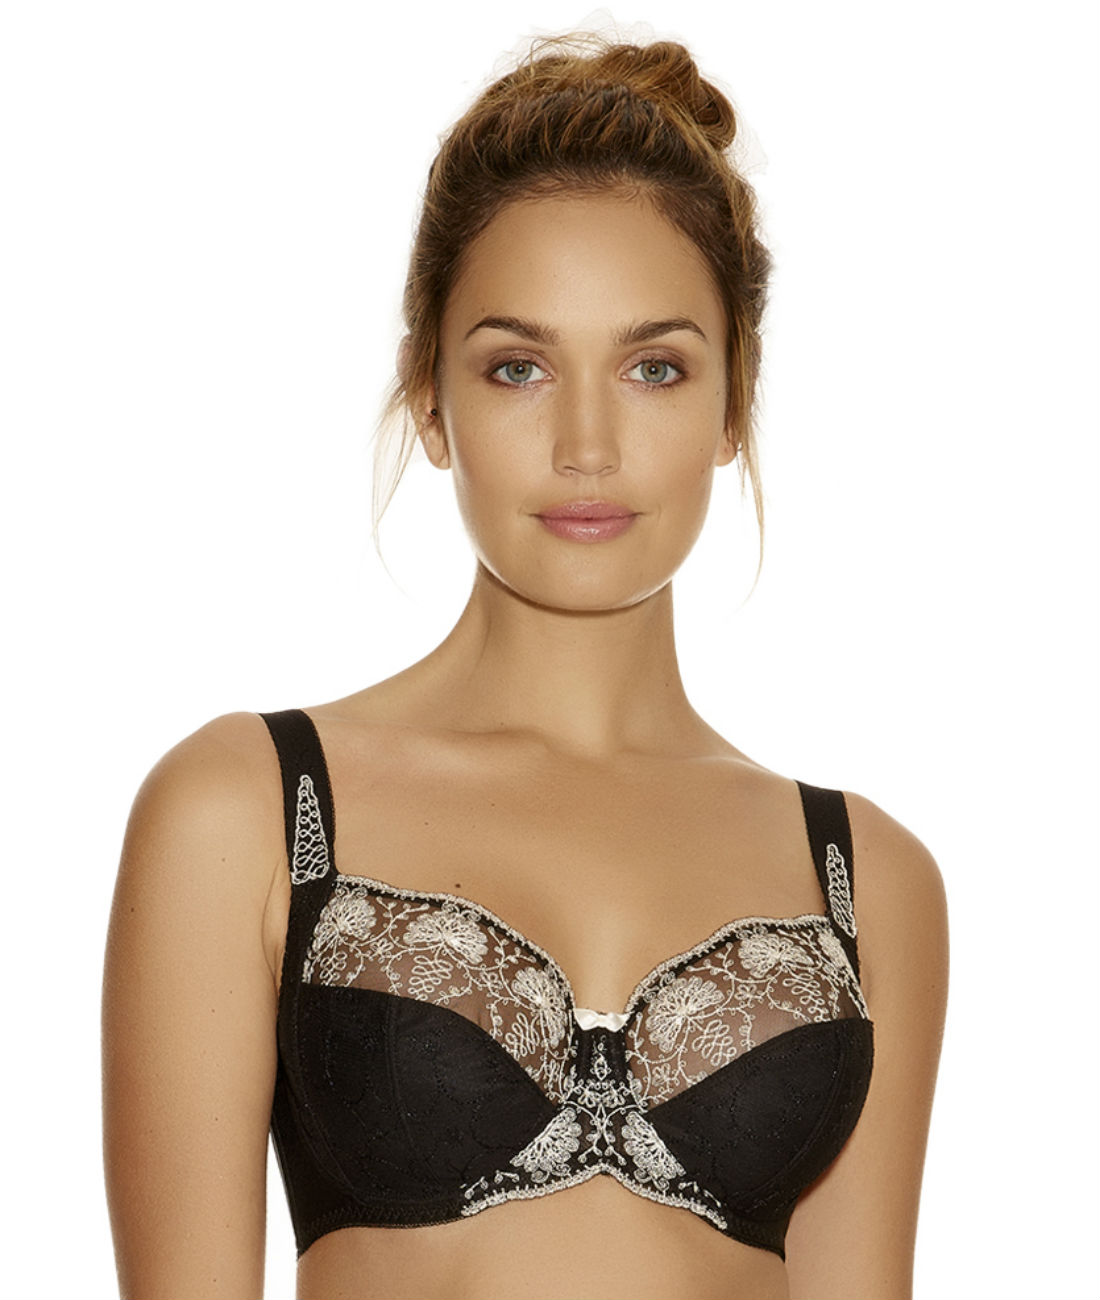 Brand New Fantasie Elodie Full Cup Bra All Sizes, Three Colours - FL2182